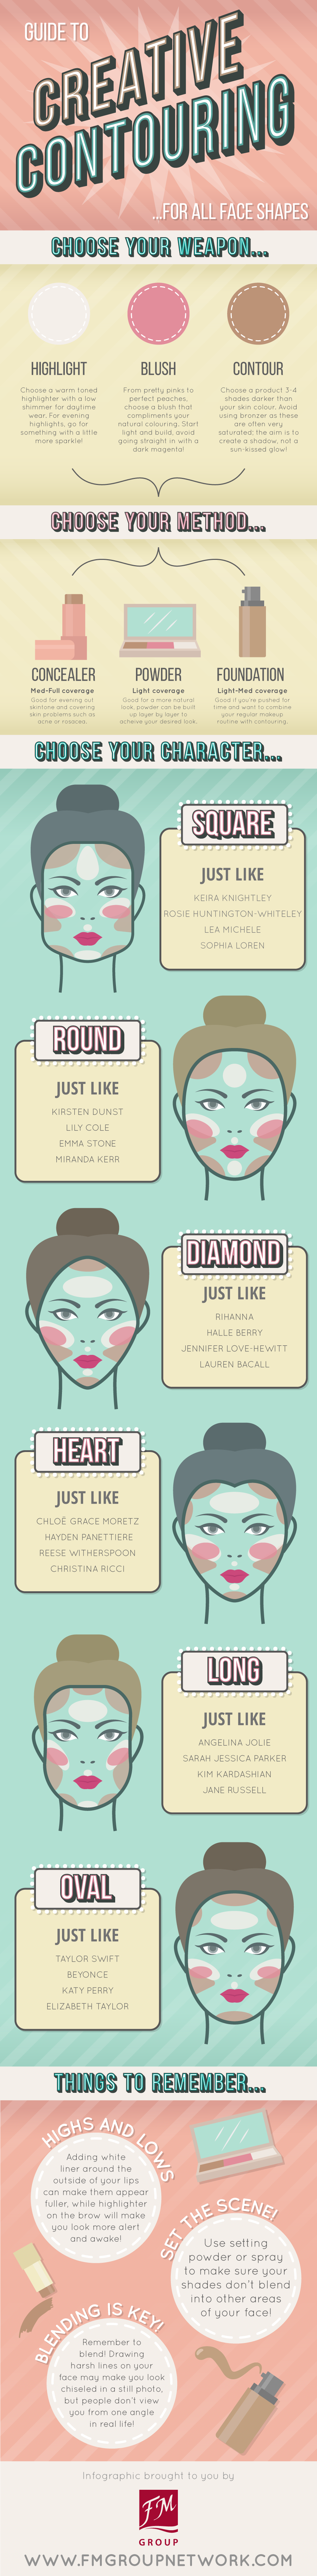 A Guide To Creative Contouring by FM Group